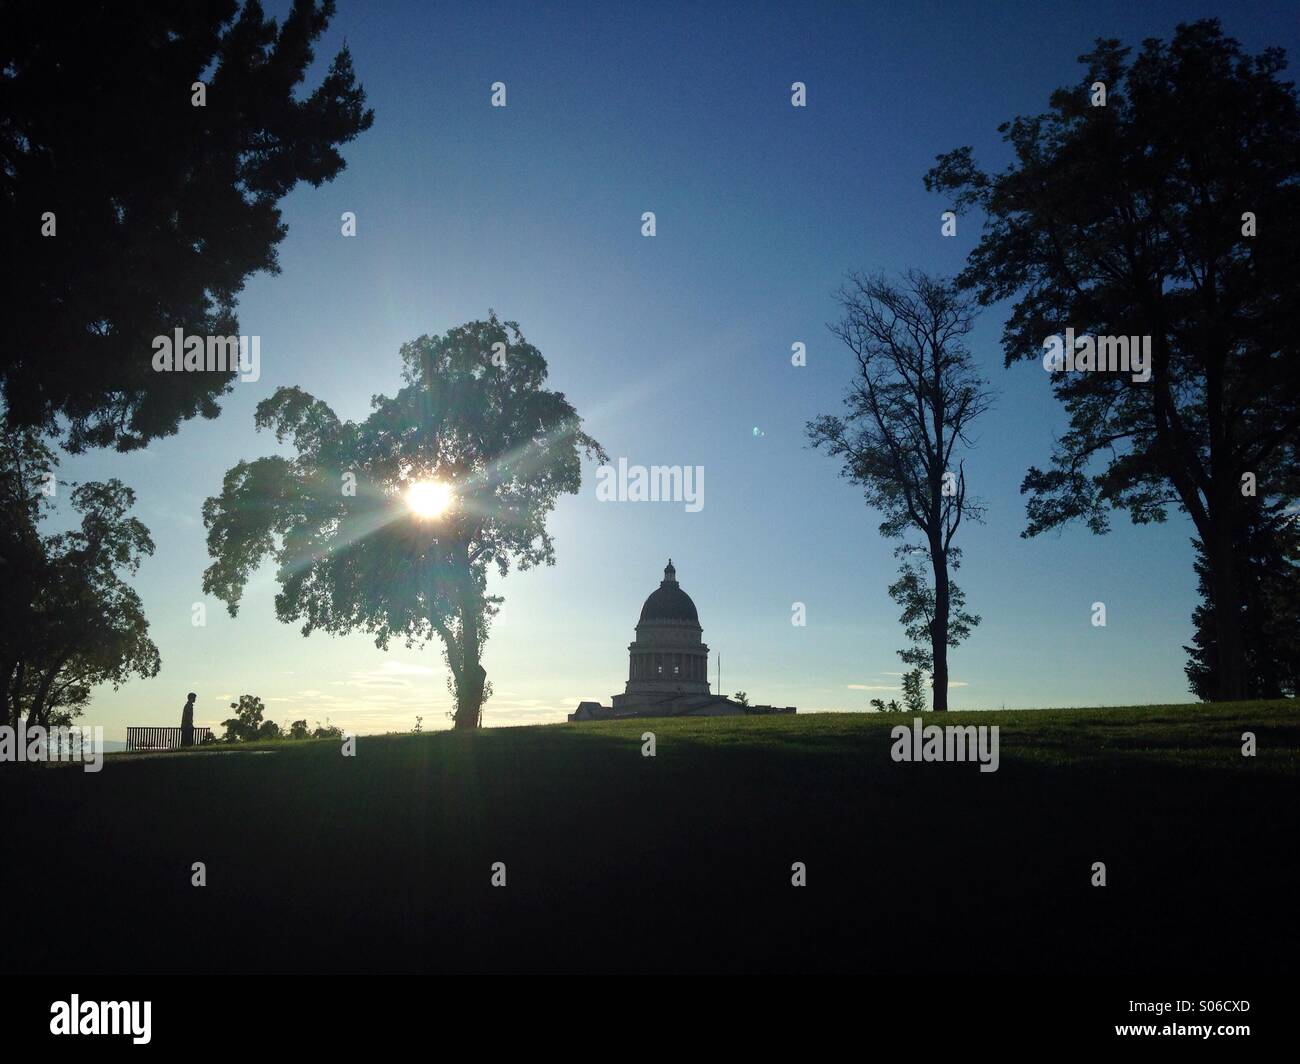 The sun is filtered through trees at a Salt Lake City park that overlooks the state Capitol building. - Stock Image